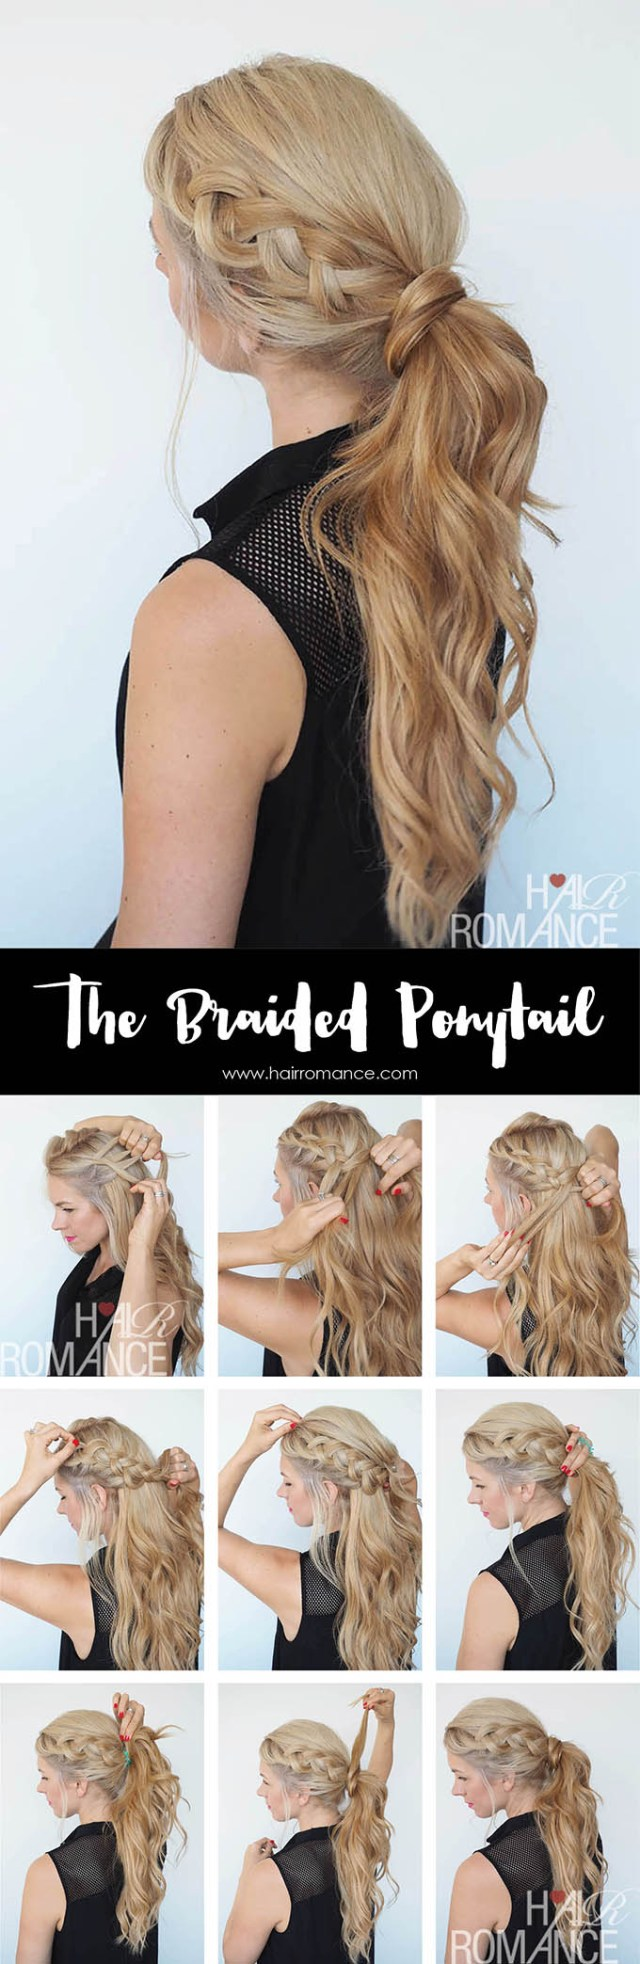 get out of a hair rut - braided ponytail hairstyle tutorial